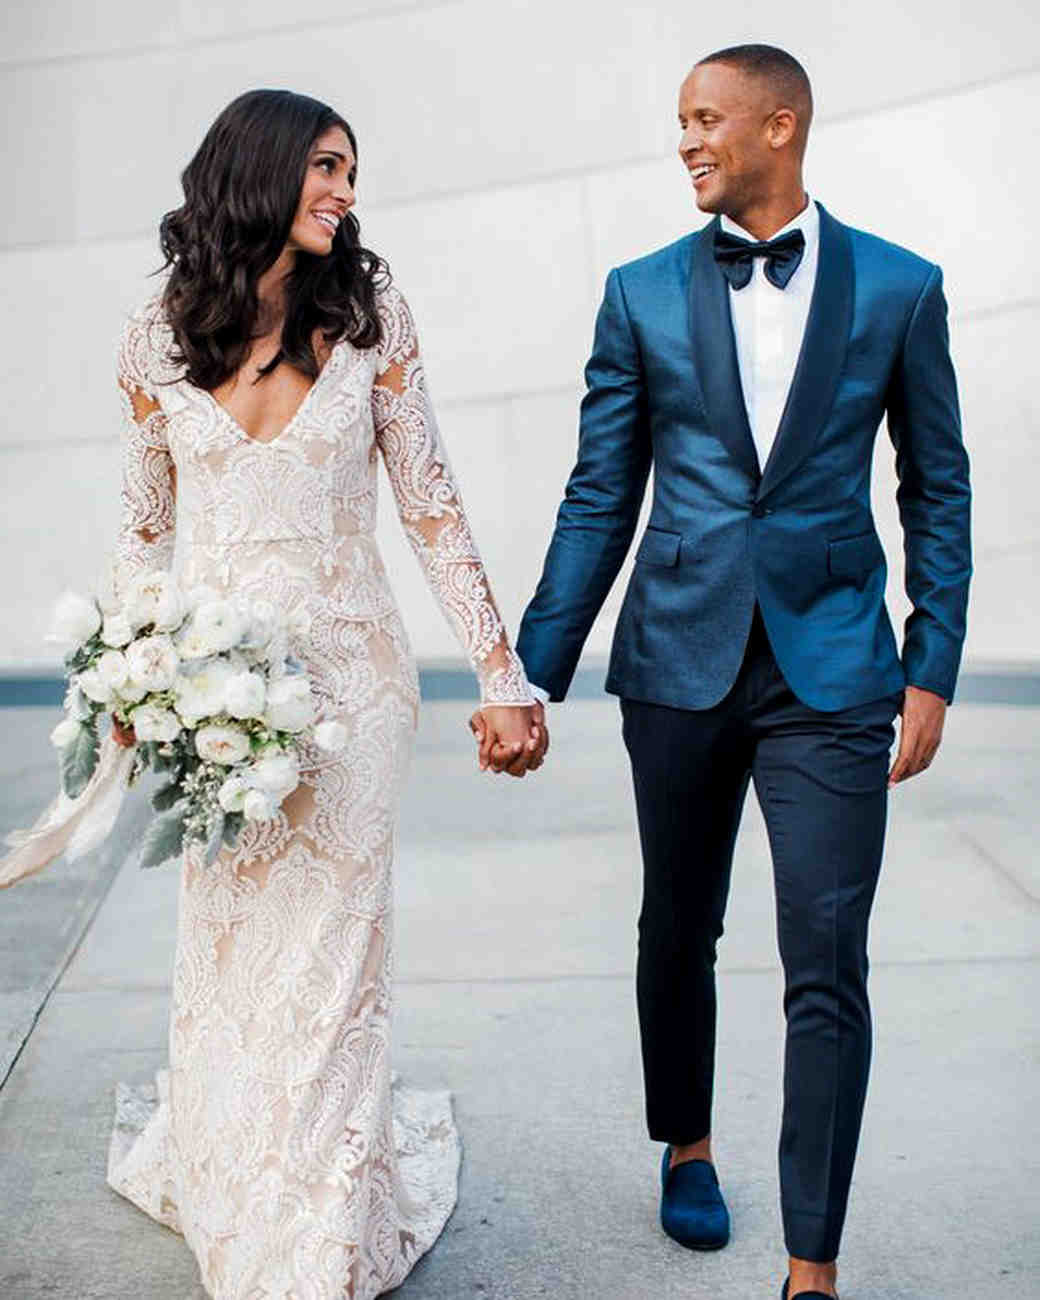 Wedding Attire For Men.Wedding Dress Suit For Man Raveitsafe